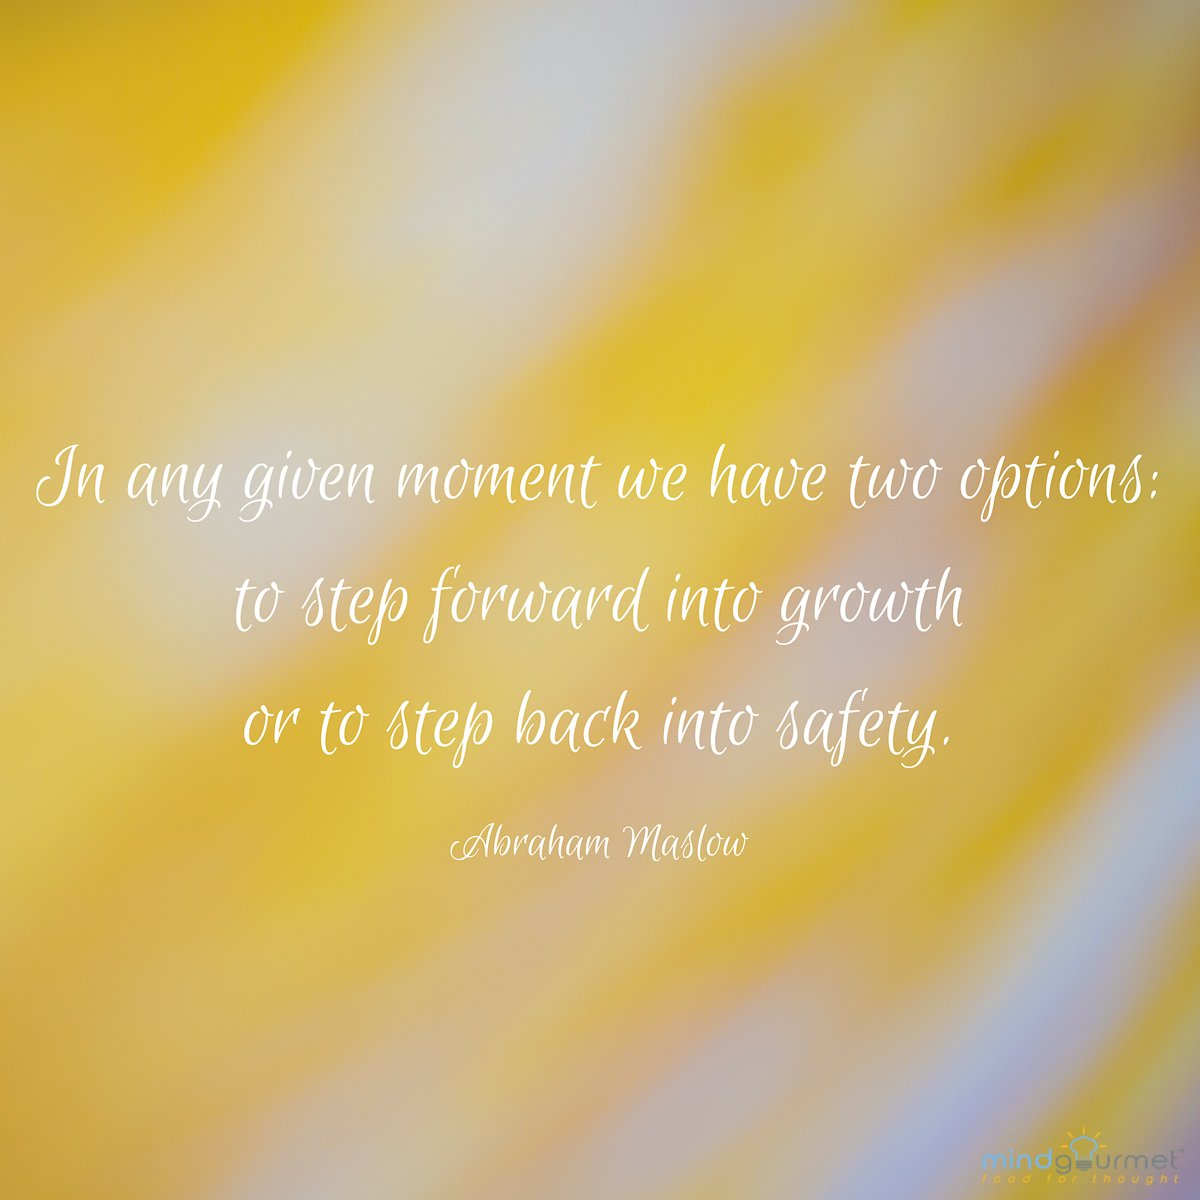 In any given moment we have two options: to step forward into growth or to step back into safety. - Abraham Maslow #AbrahamMaslow #comfortzone #comfortzoneweek #catchoftheday<br>http://pic.twitter.com/kktcETExH4